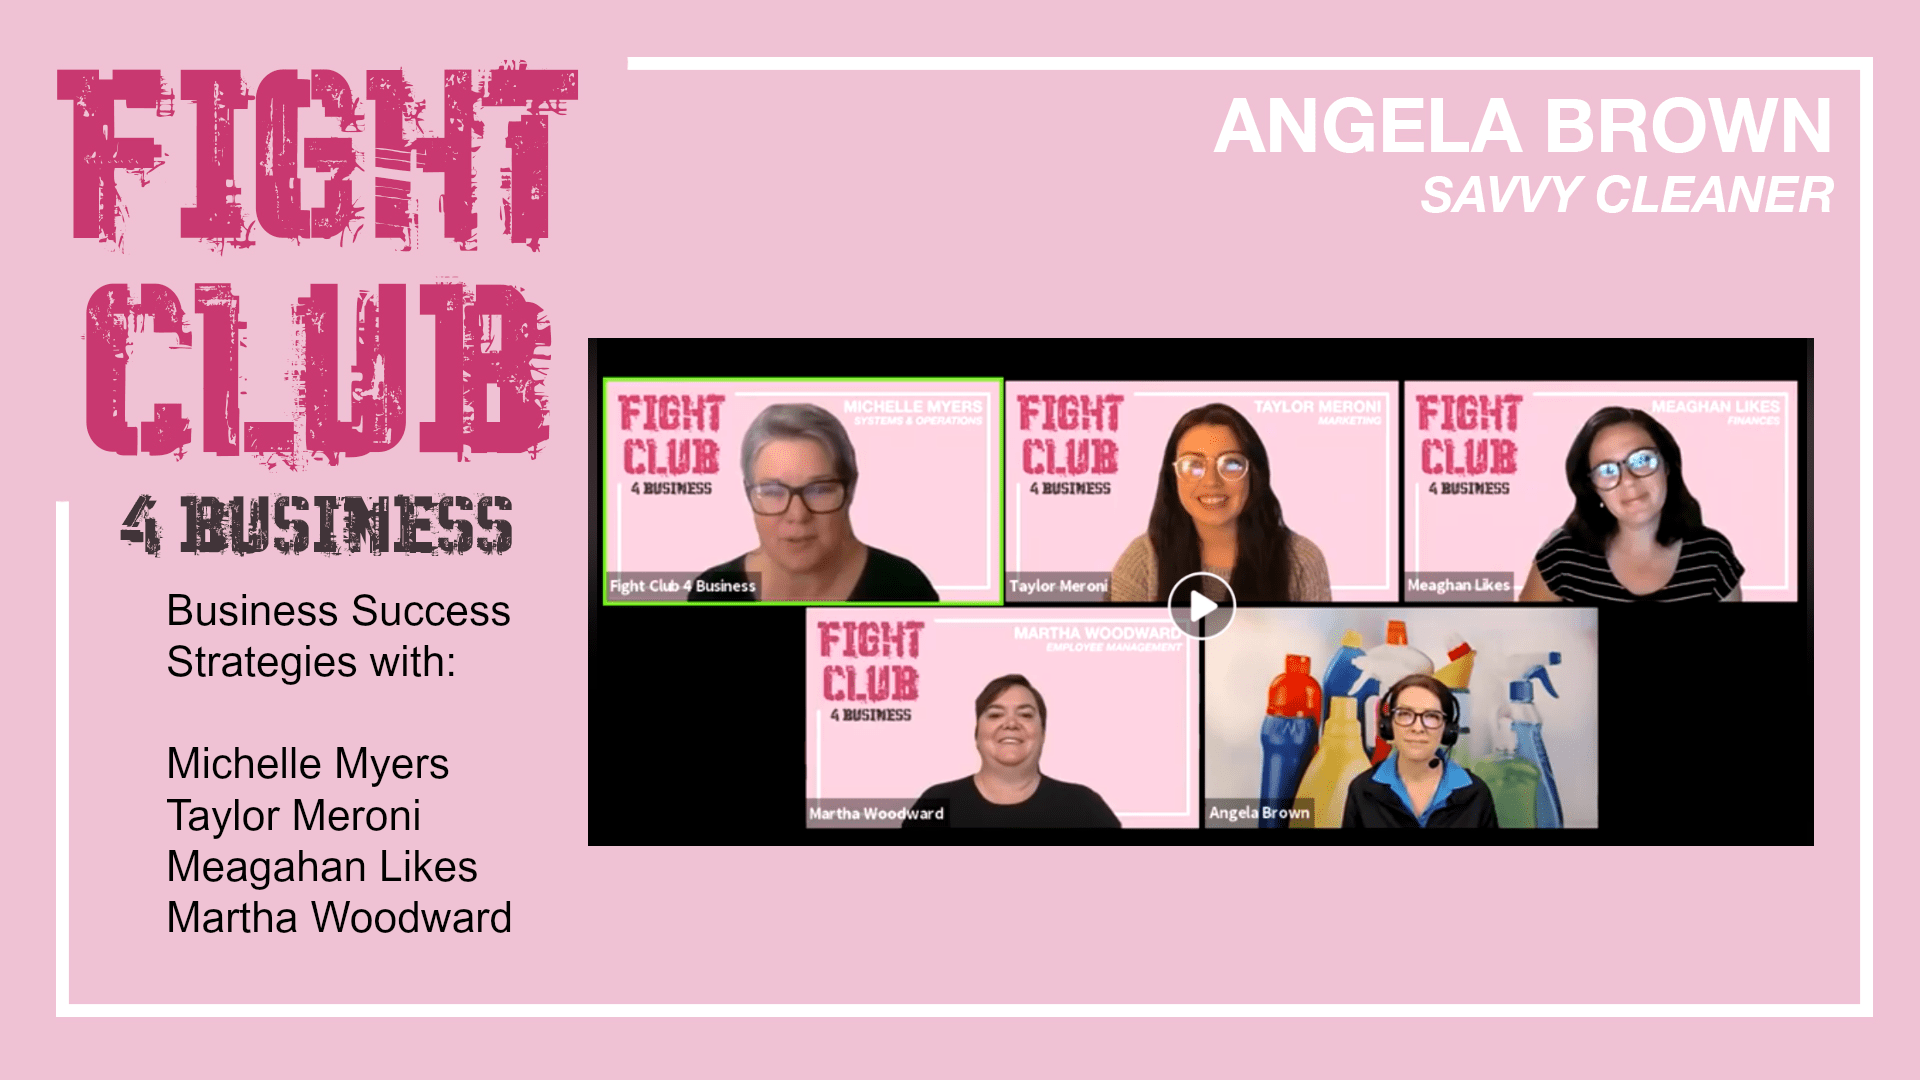 Fight Club for Business with Angela Brown